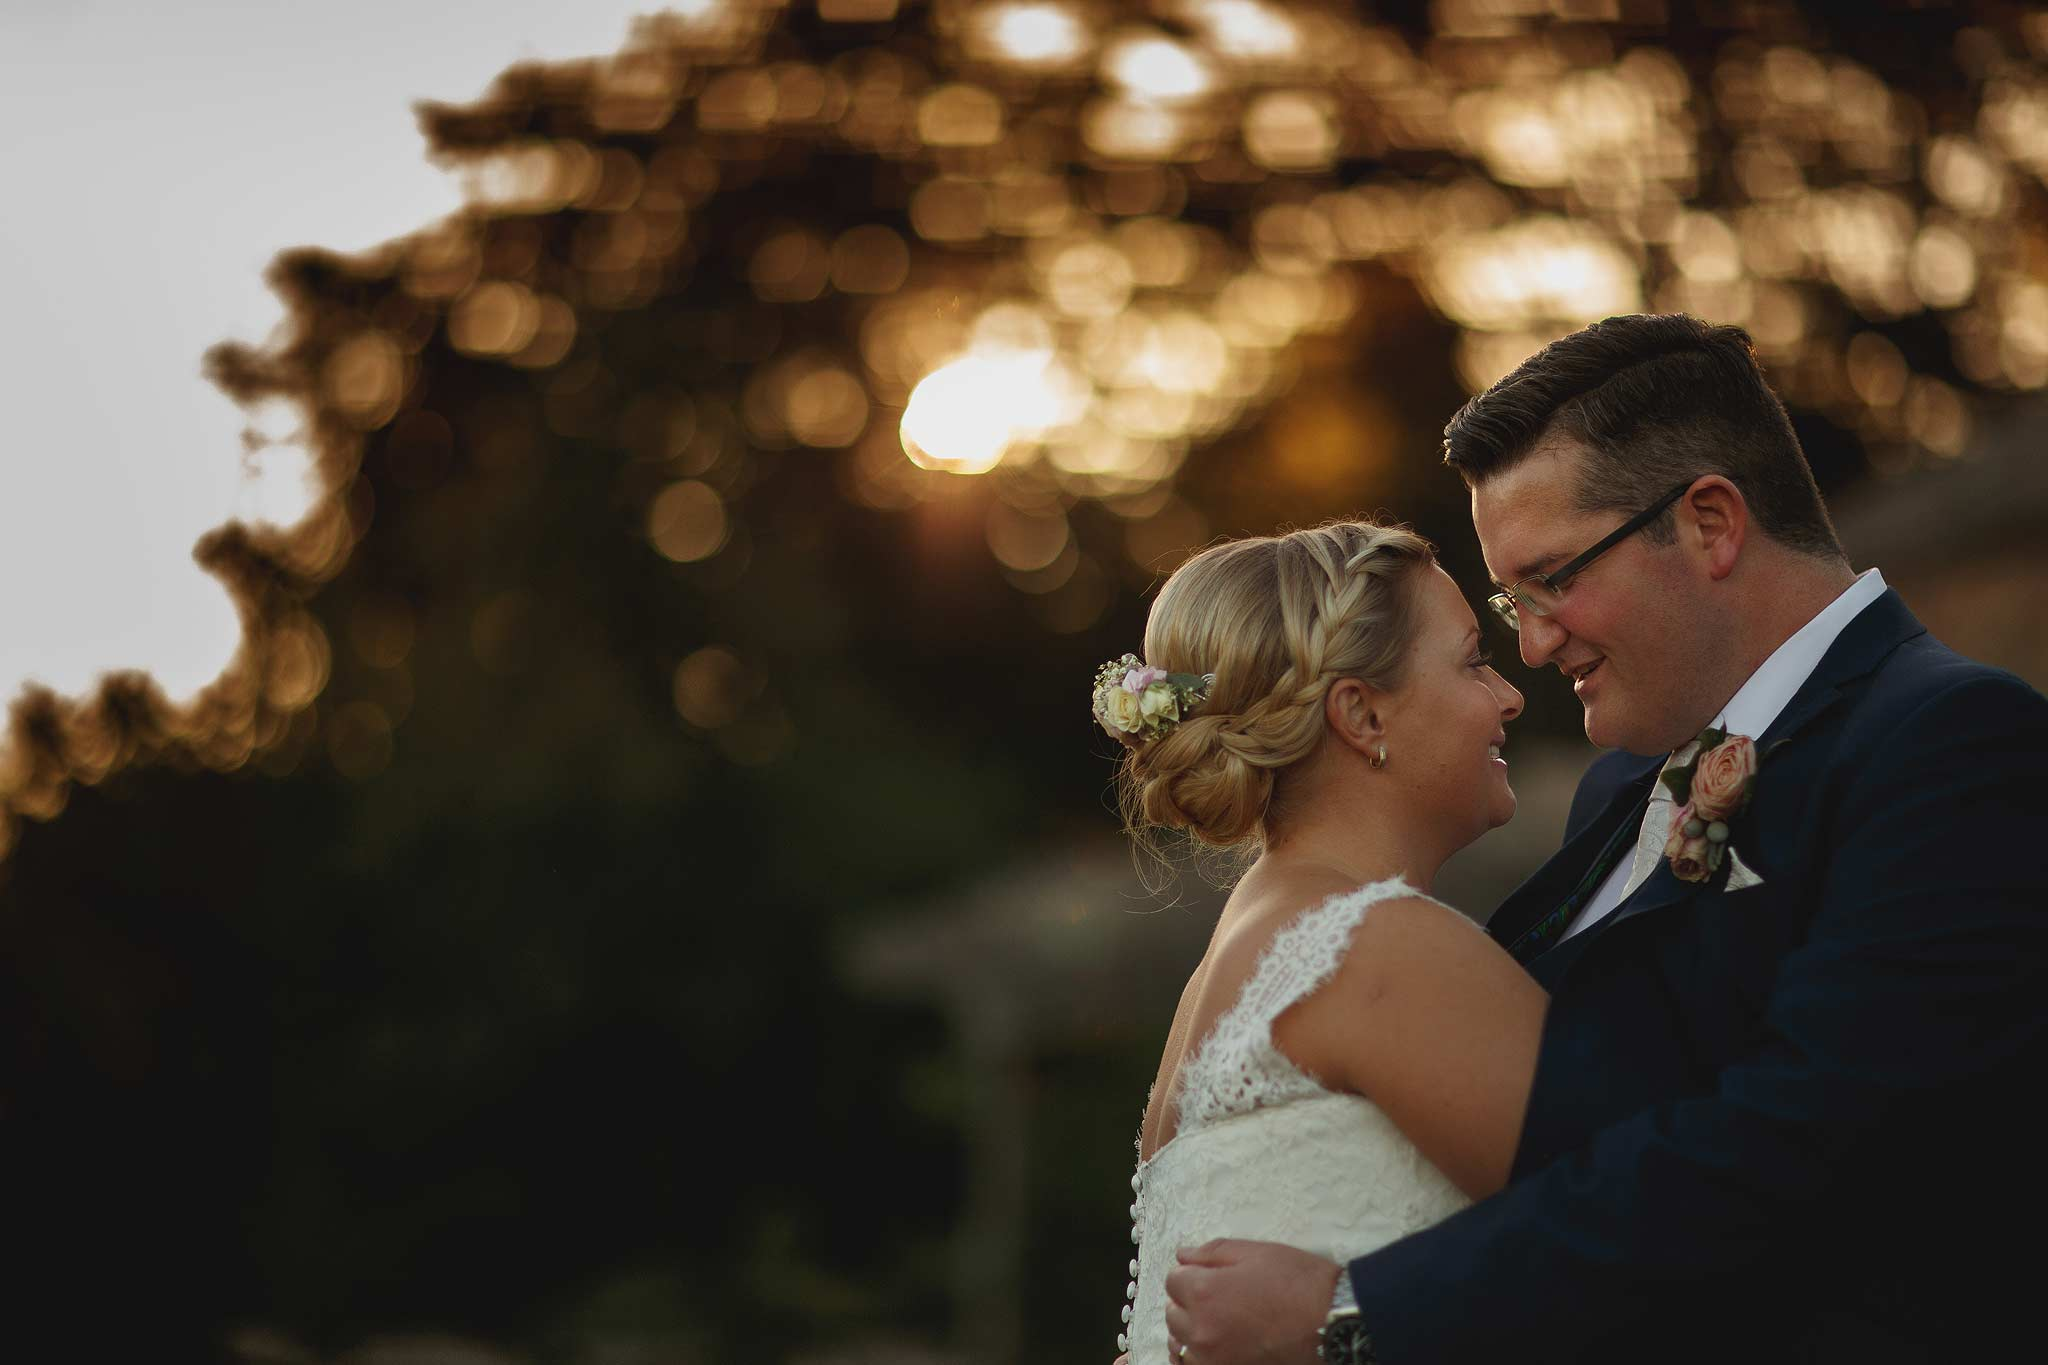 nice bokeh behind bride and groom at sunset